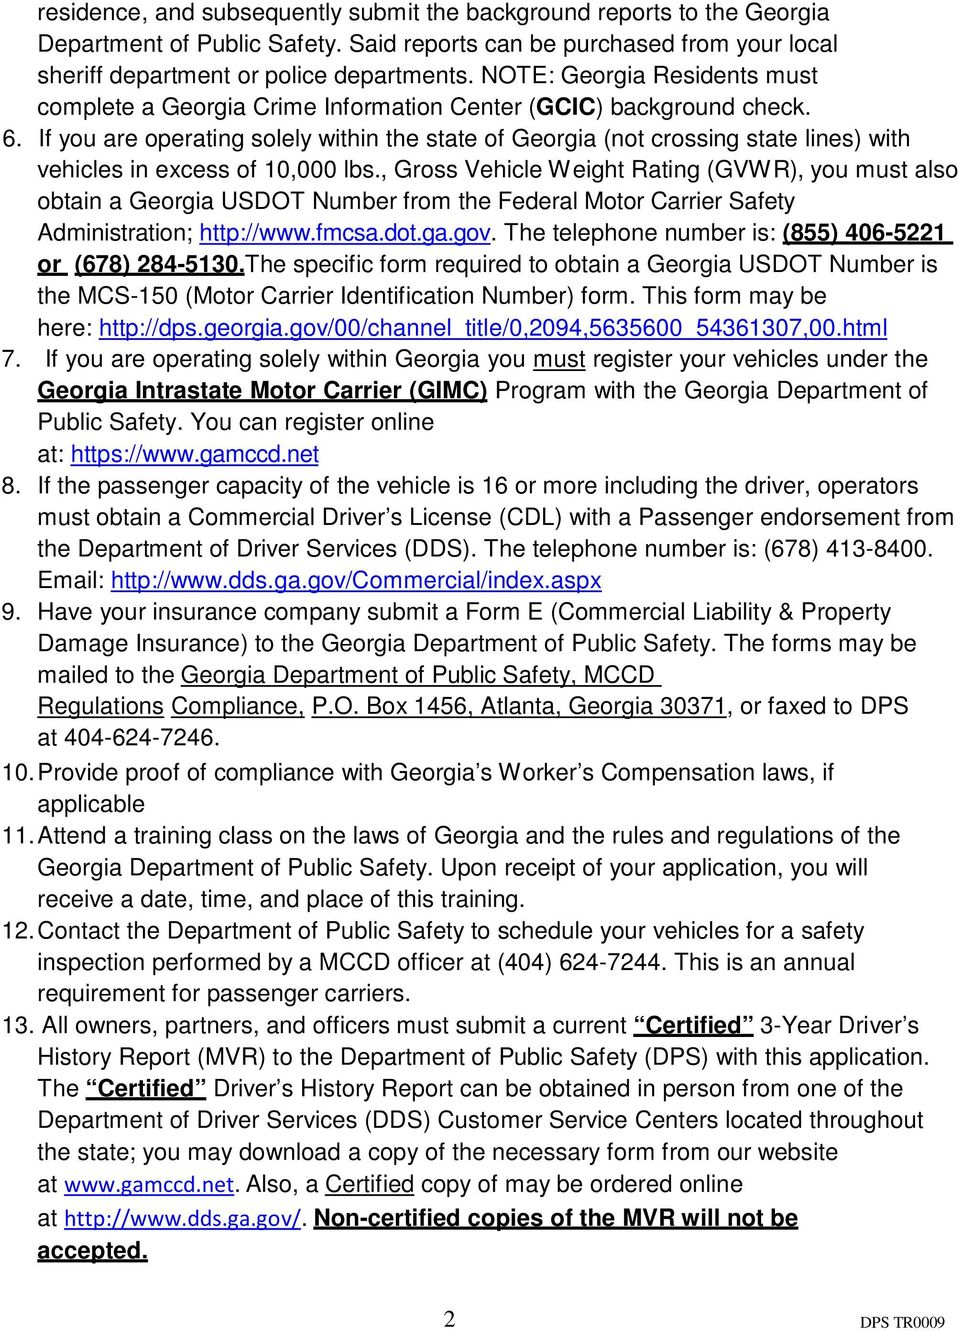 If you are operating solely within the state of Georgia (not crossing state lines) with vehicles in excess of 10,000 lbs.